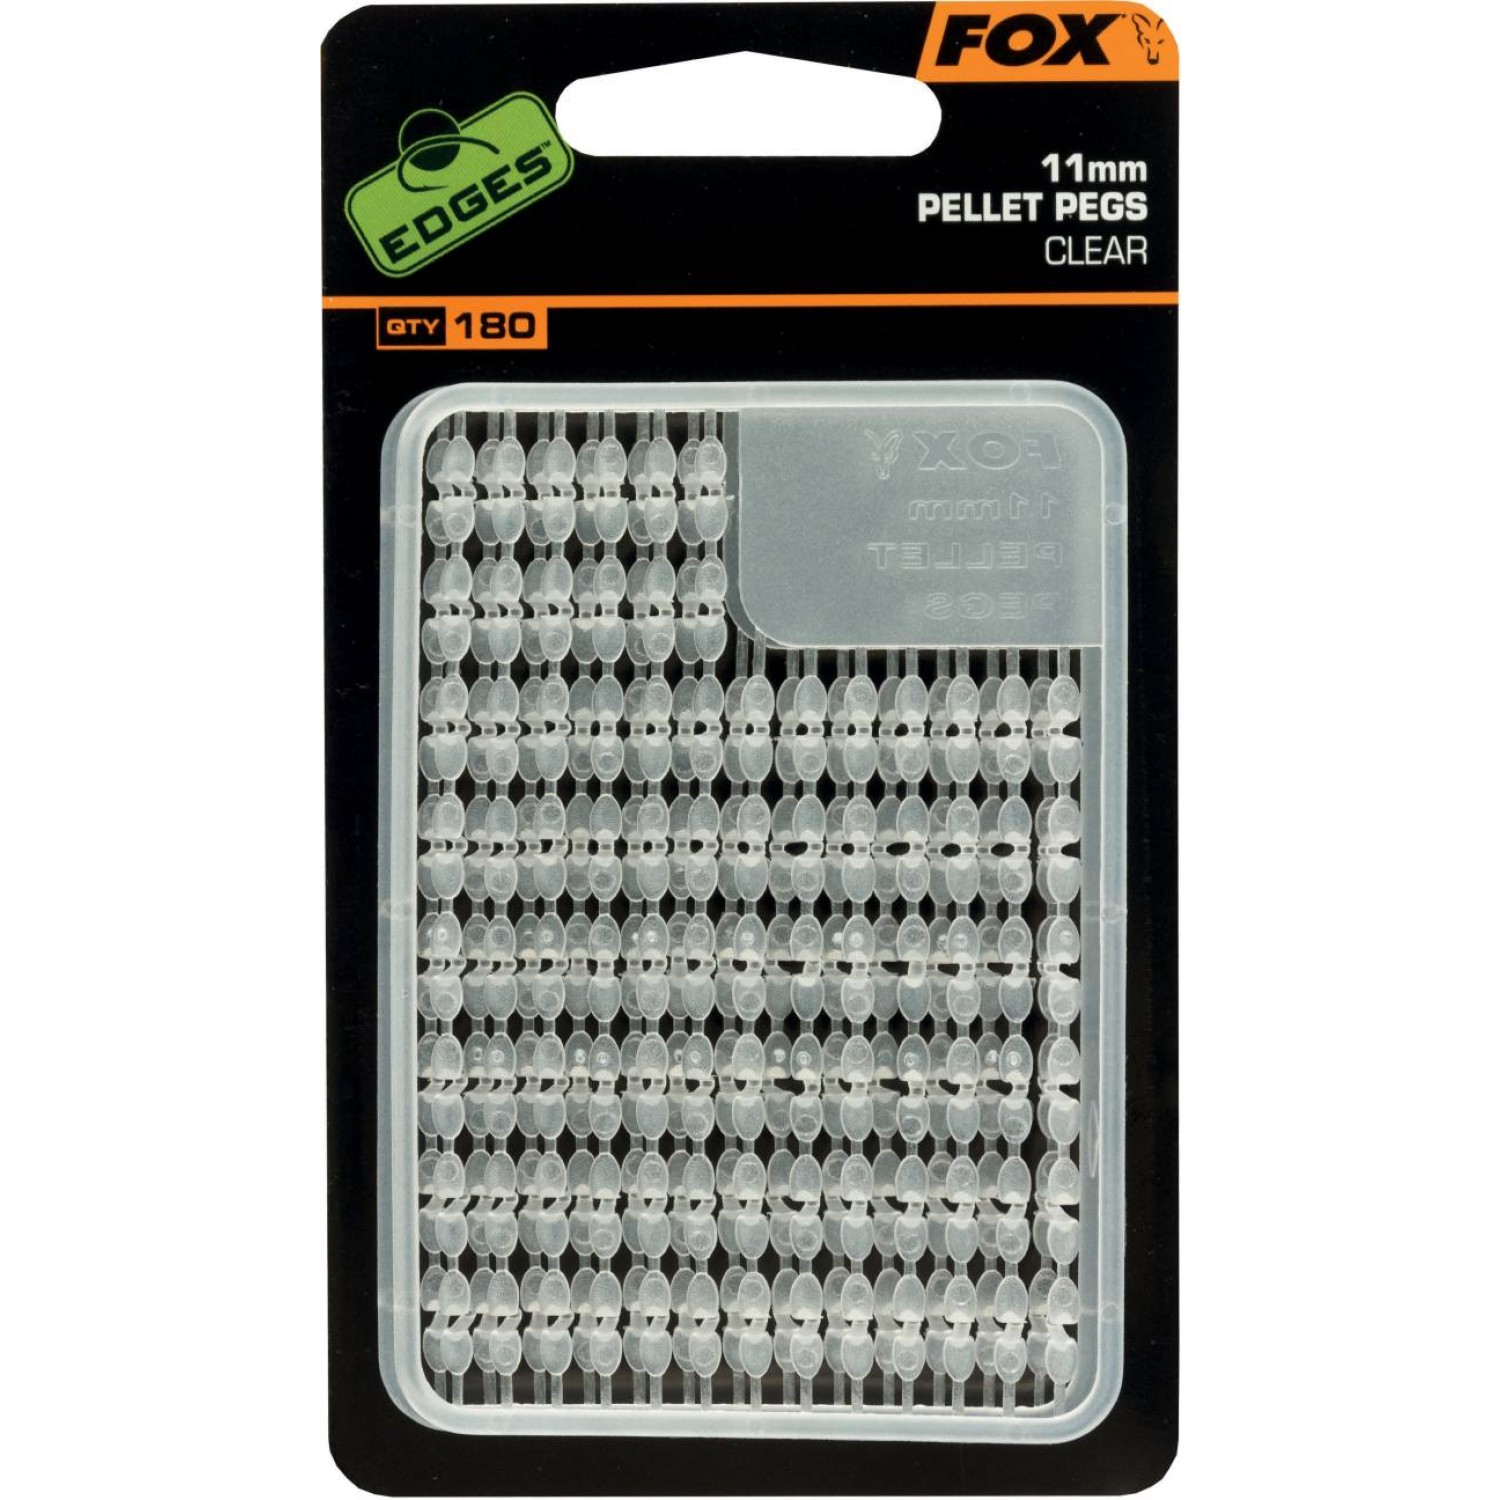 Fox Edges Pellet Pegs, Clear